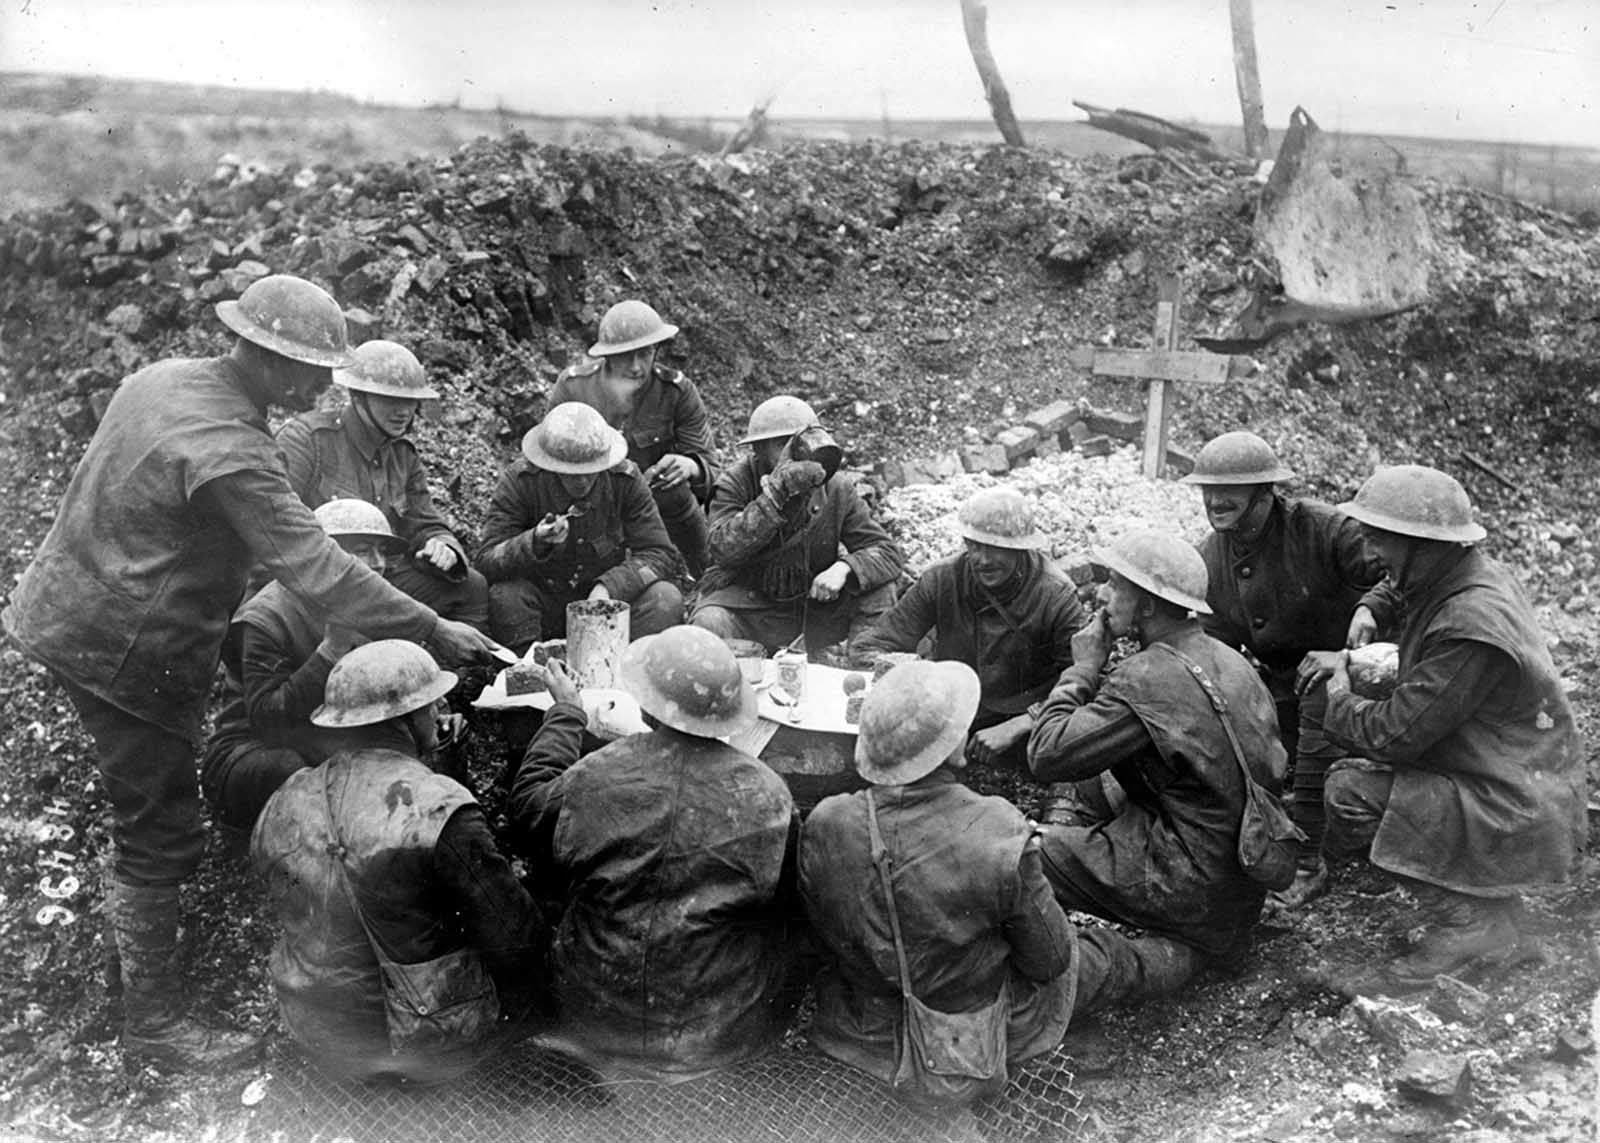 On the British front, Christmas Dinner, 1916, in a shell hole beside a grave.